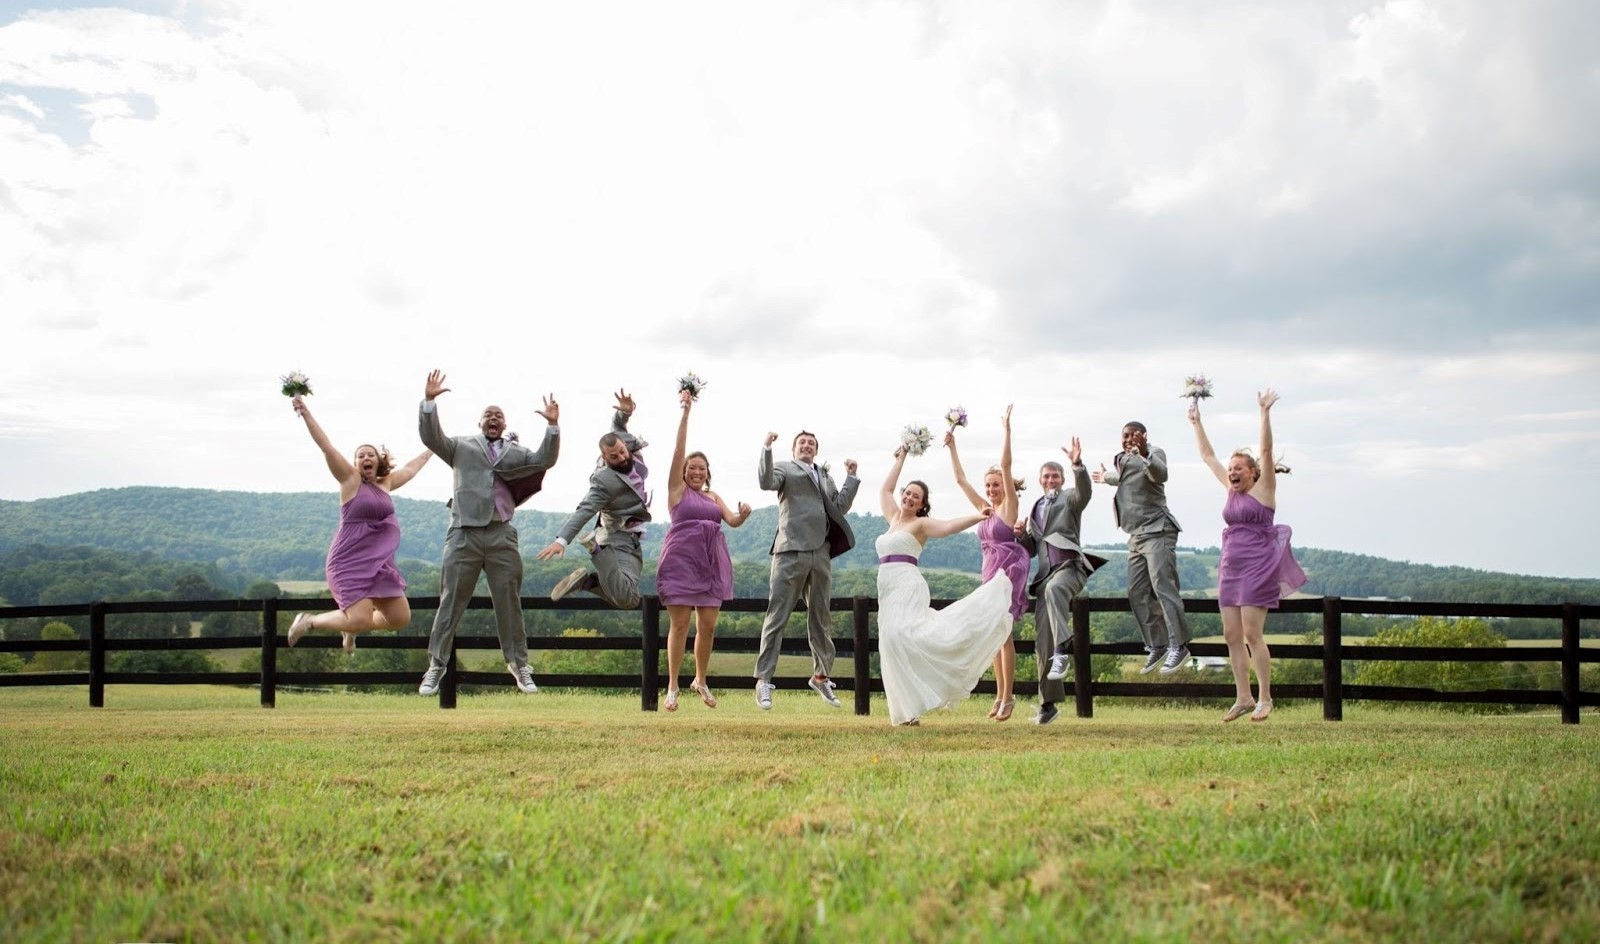 _Aldrich; Bridal Party 3; Wolf Trap Farm; Ryan & Rach Photography.jpg